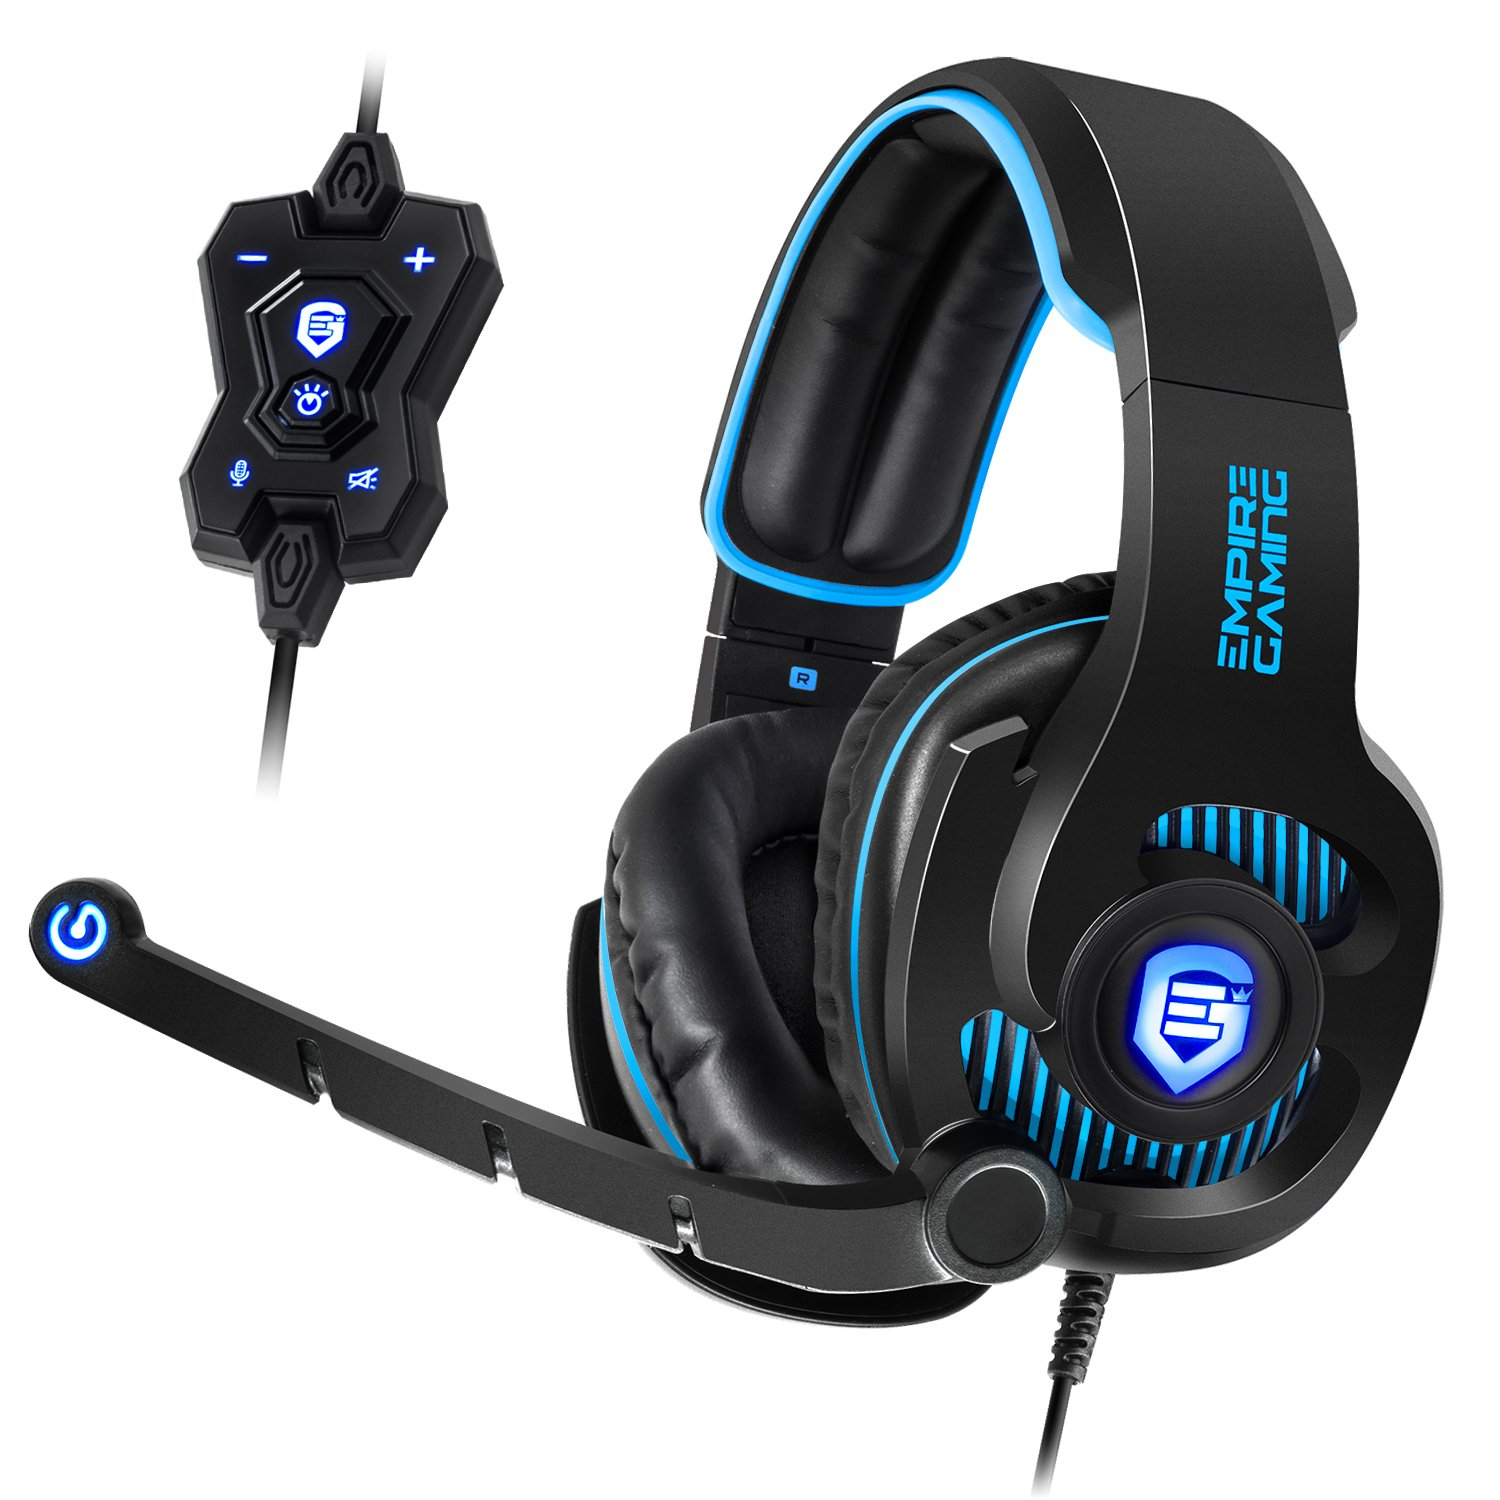 Empire Gaming H1800 - Cuffia Gamer PC Audio Surround 7.1 virtuale, telecomando con filo, micro-flessibile e auricolari con retroilluminazione LED Blu. USB compatibile PC e console PS4 / XBOX ONE*